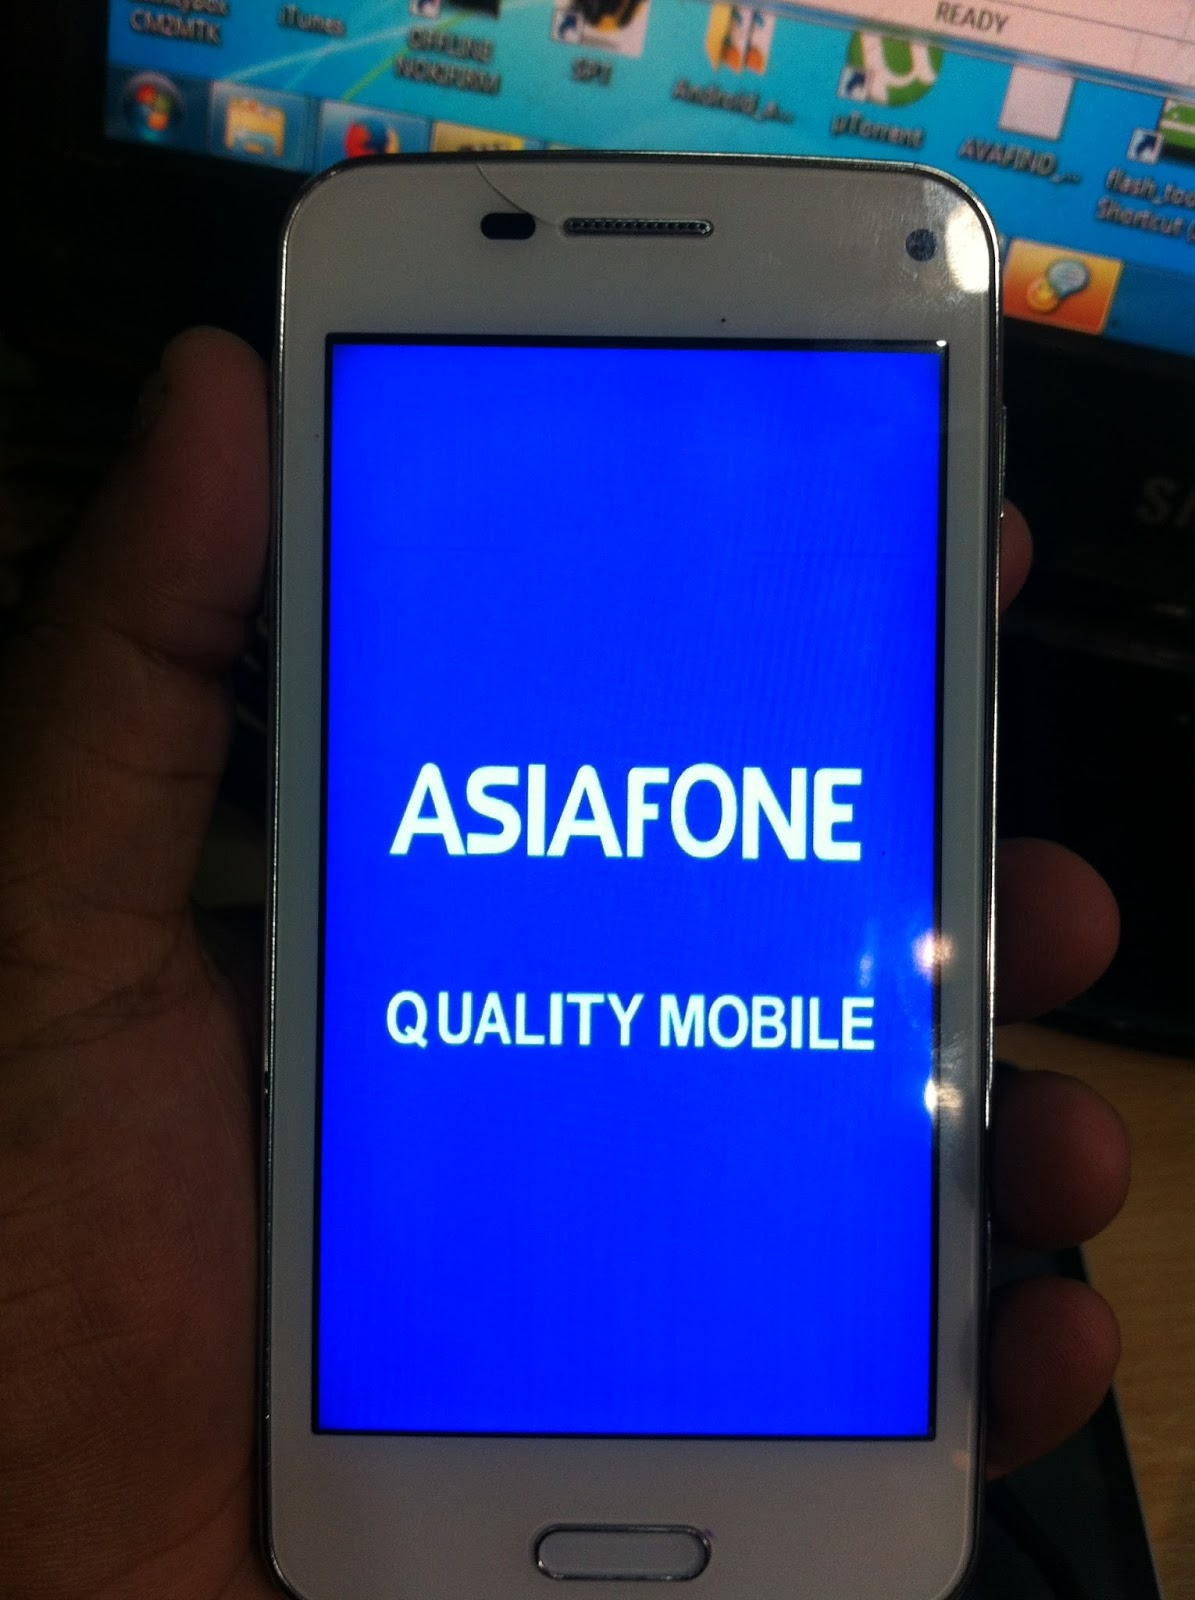 Asia fone af9890 firmware flash file free download altavistaventures Gallery